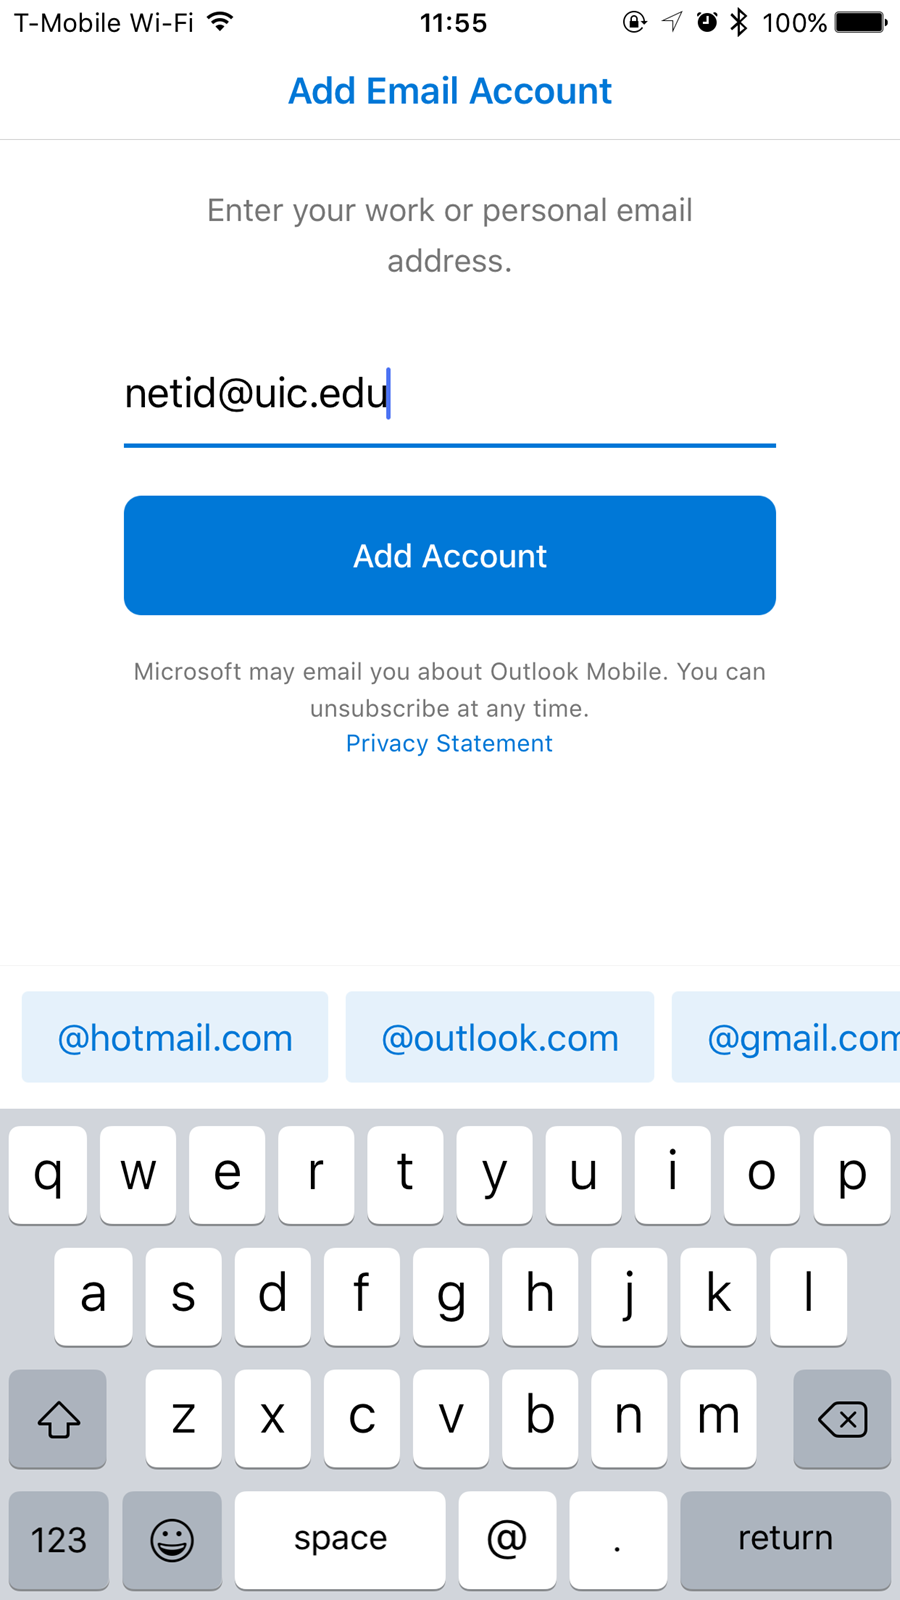 add email account screen showing field to enter your U I C email